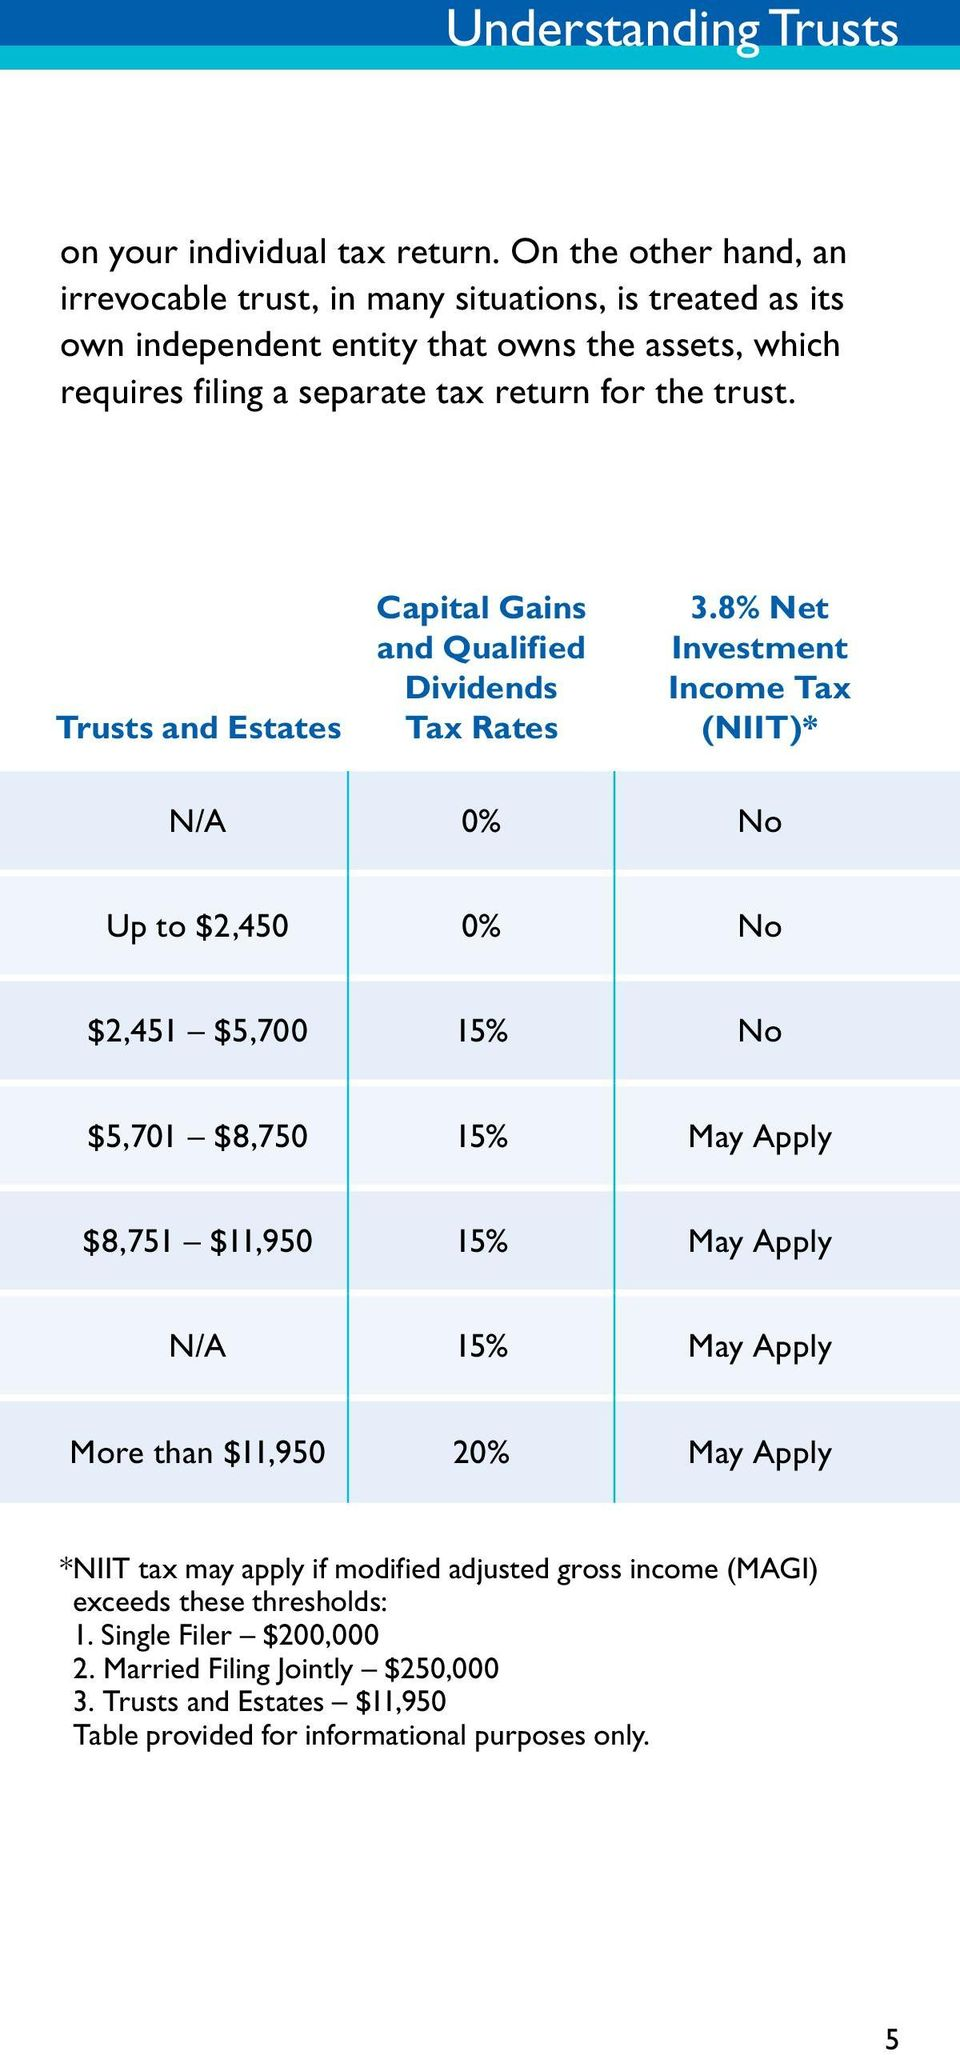 Trusts and Estates Capital Gains and Qualified Dividends Tax Rates 3.